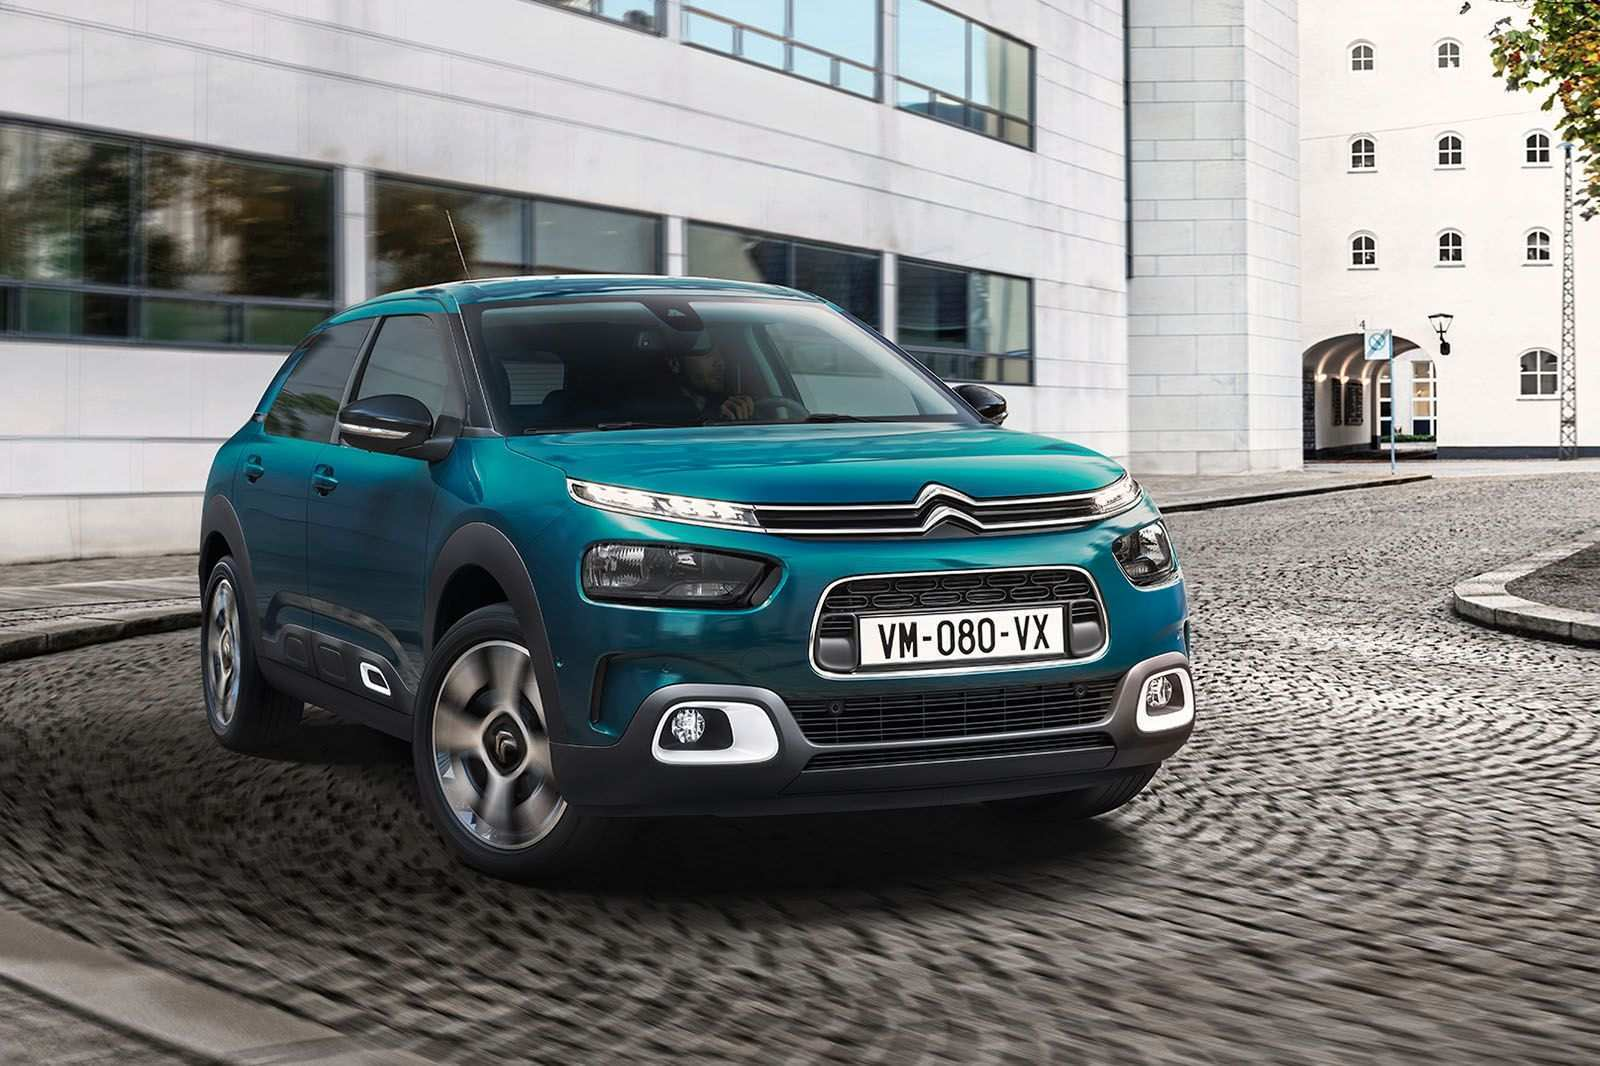 21 New 2020 Citroen C4 2018 Price for 2020 Citroen C4 2018